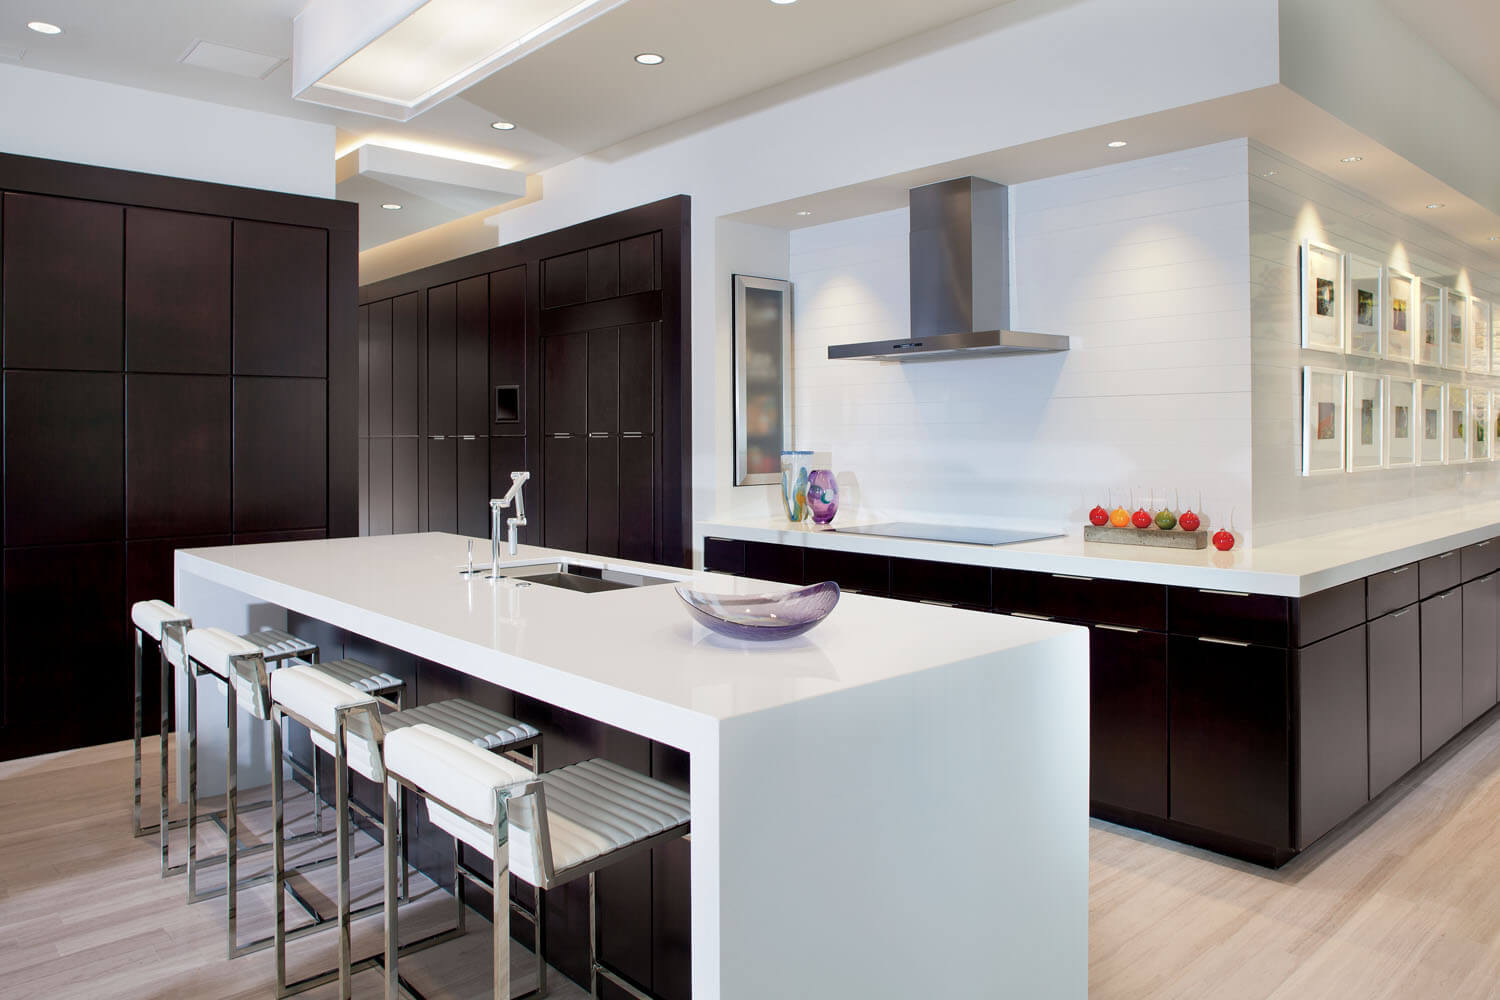 The New American Home 2012 features Timberlake Cabinetry